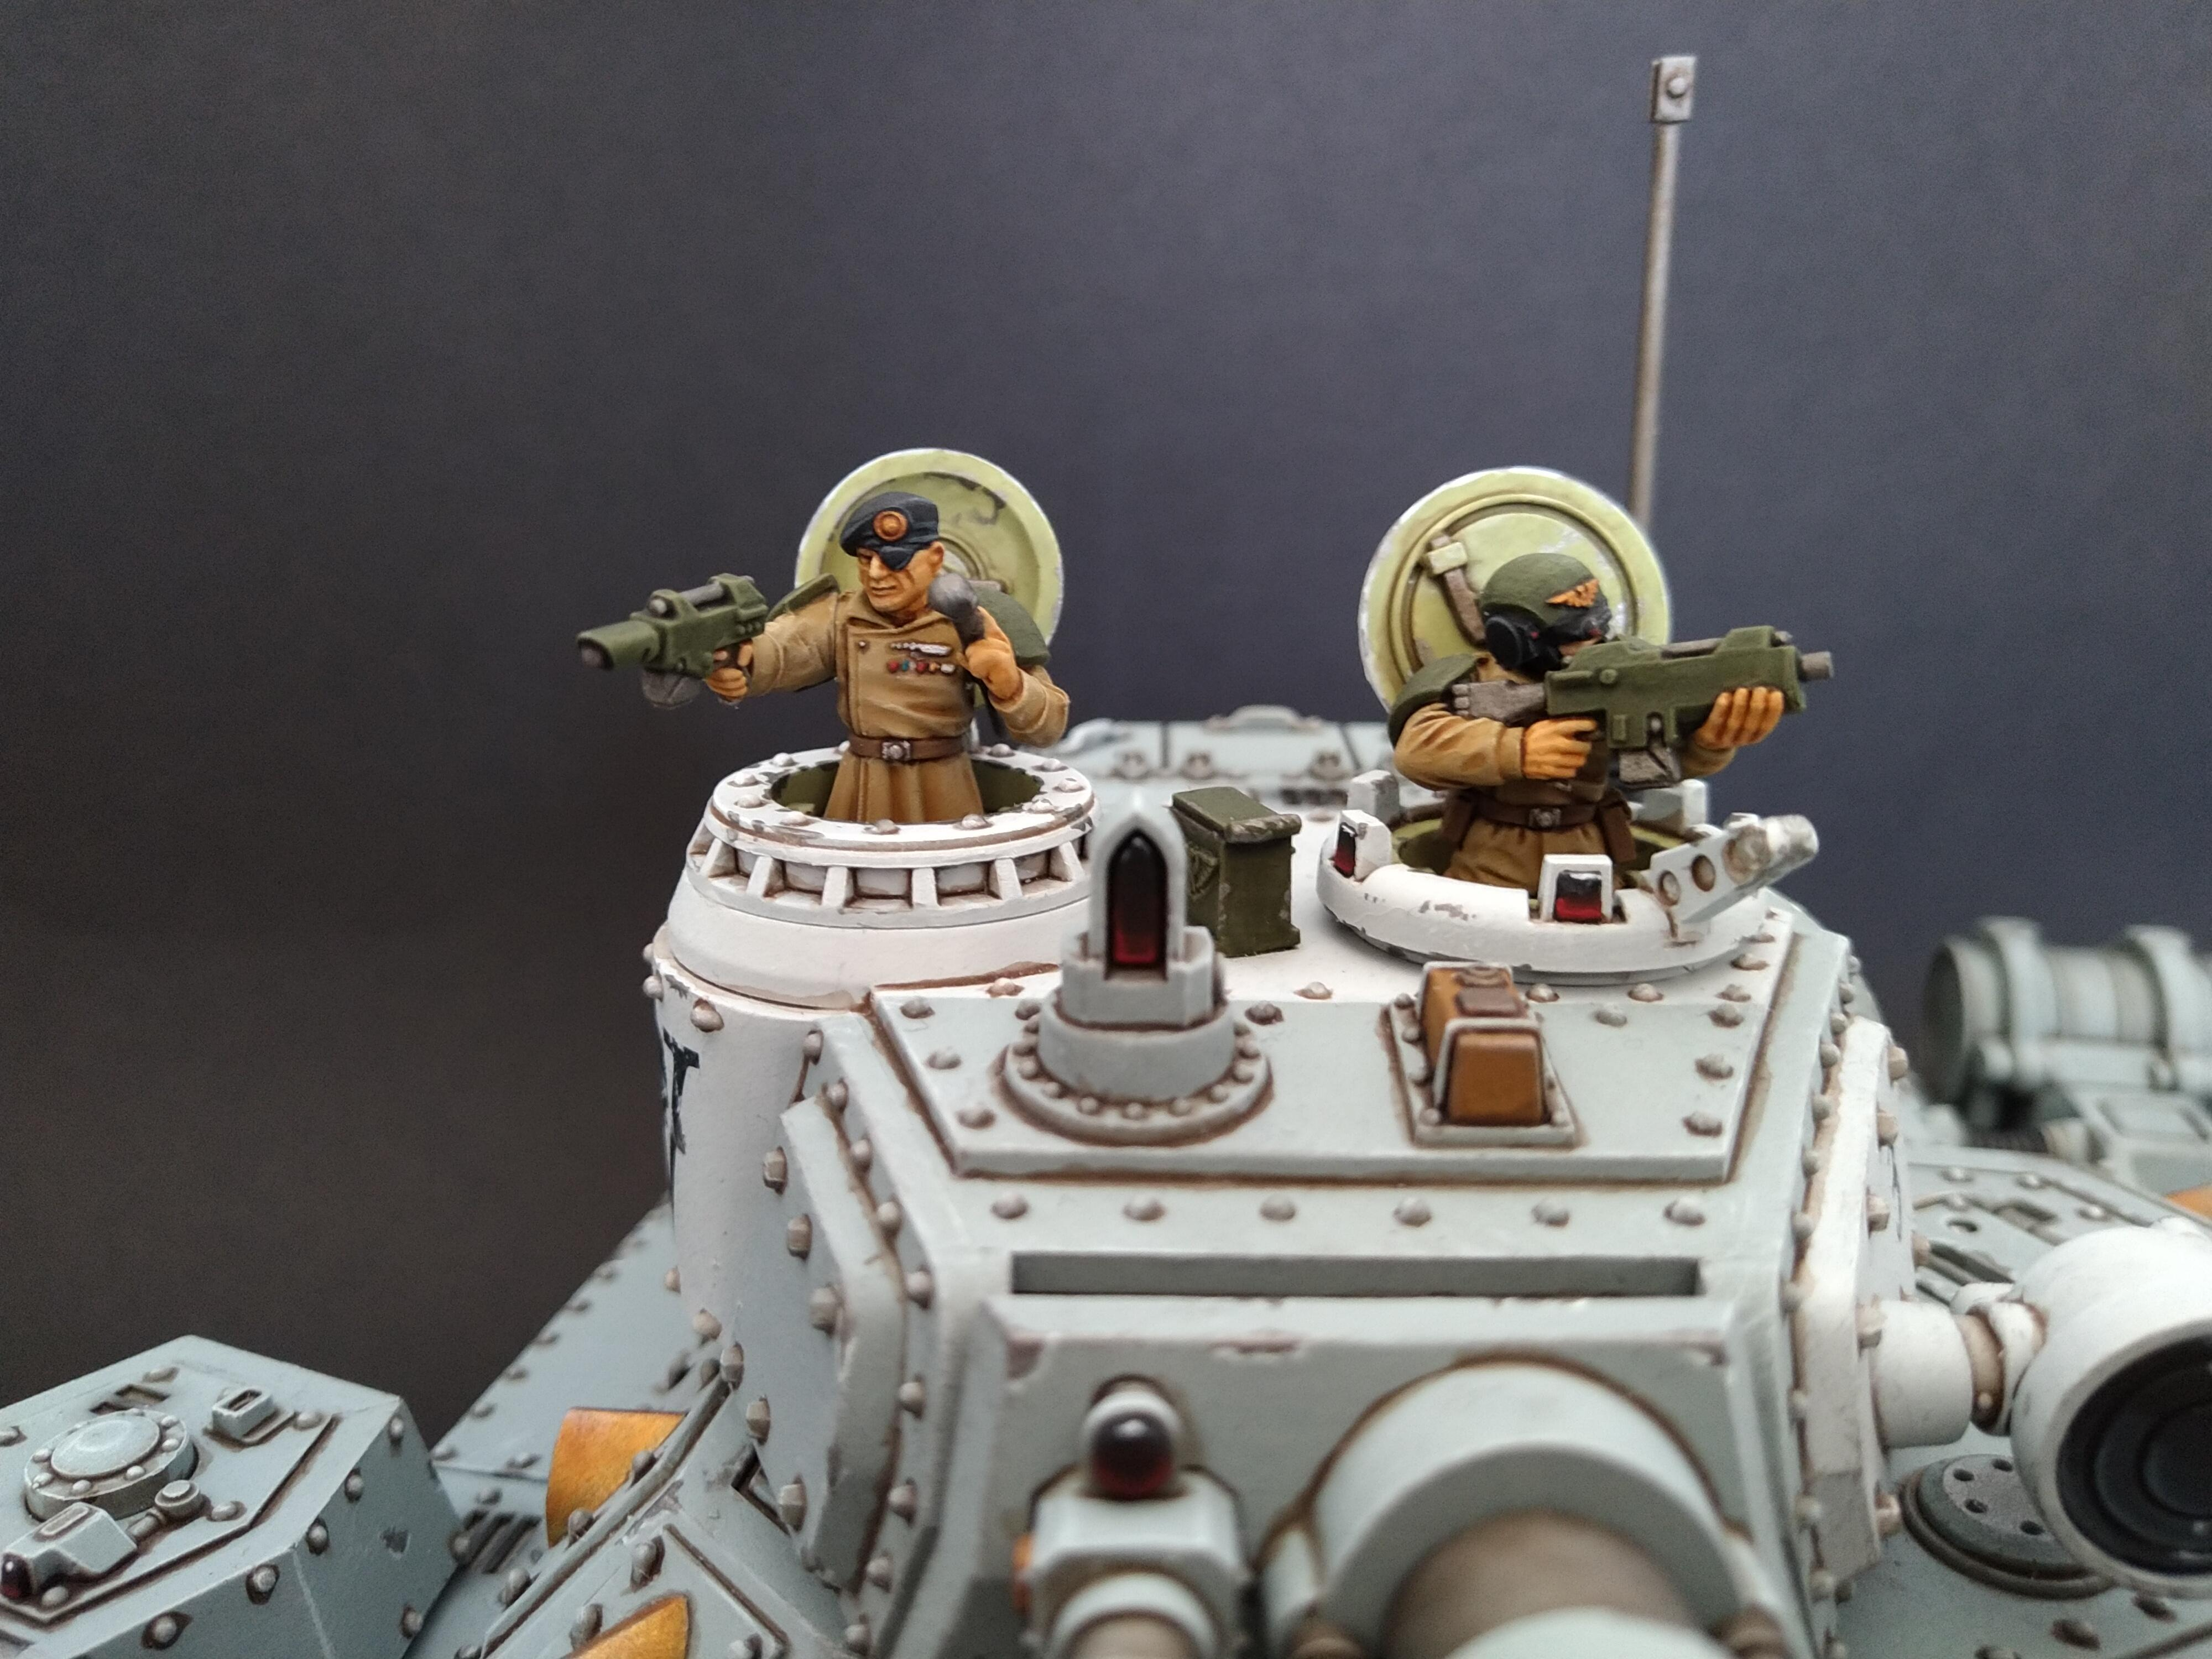 Am, Astra Militarum, Baneblade, Front, Grey, Hellhammer, Magnetised, Tank, Turret, Warhammer 40,000